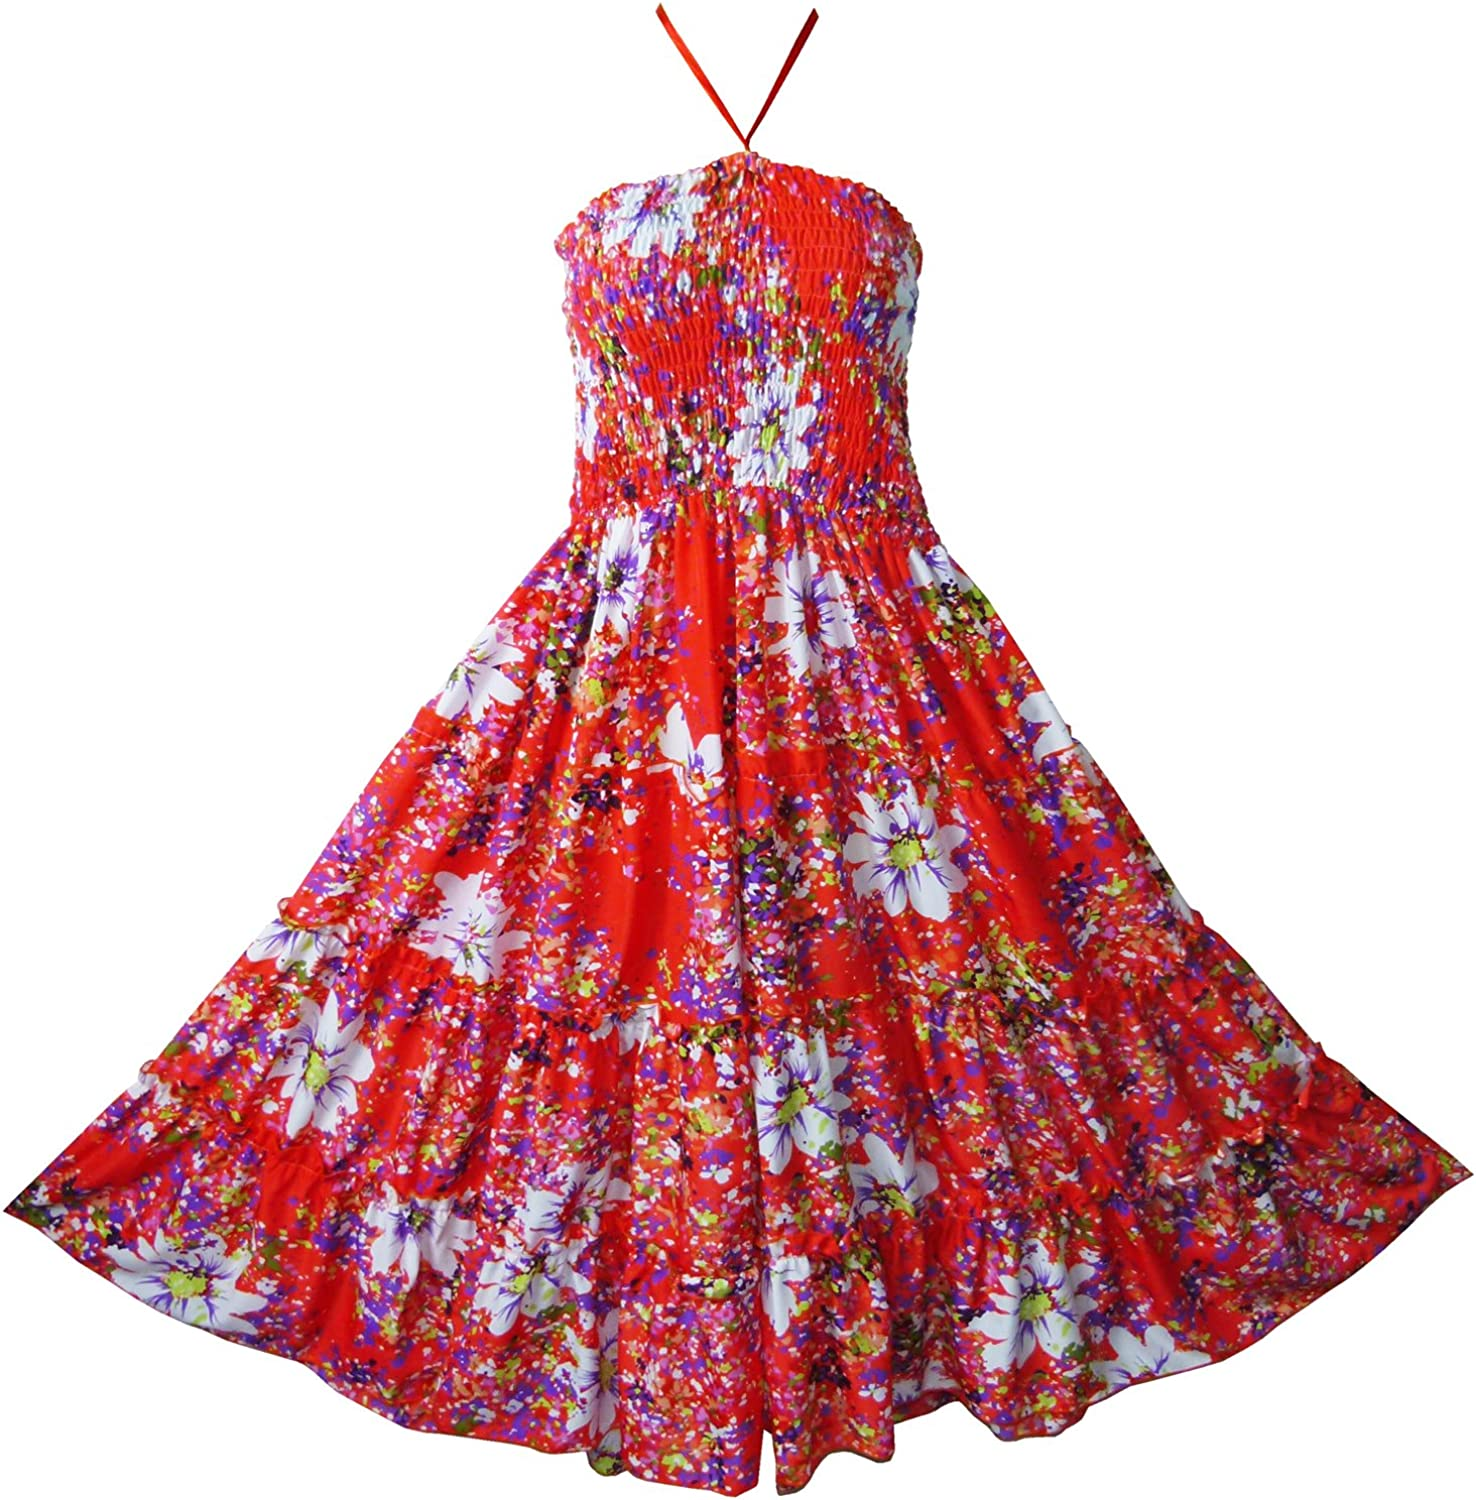 Pikulla Halter Smock Womens Red Garden Floral Hippie Gypsy Sundress